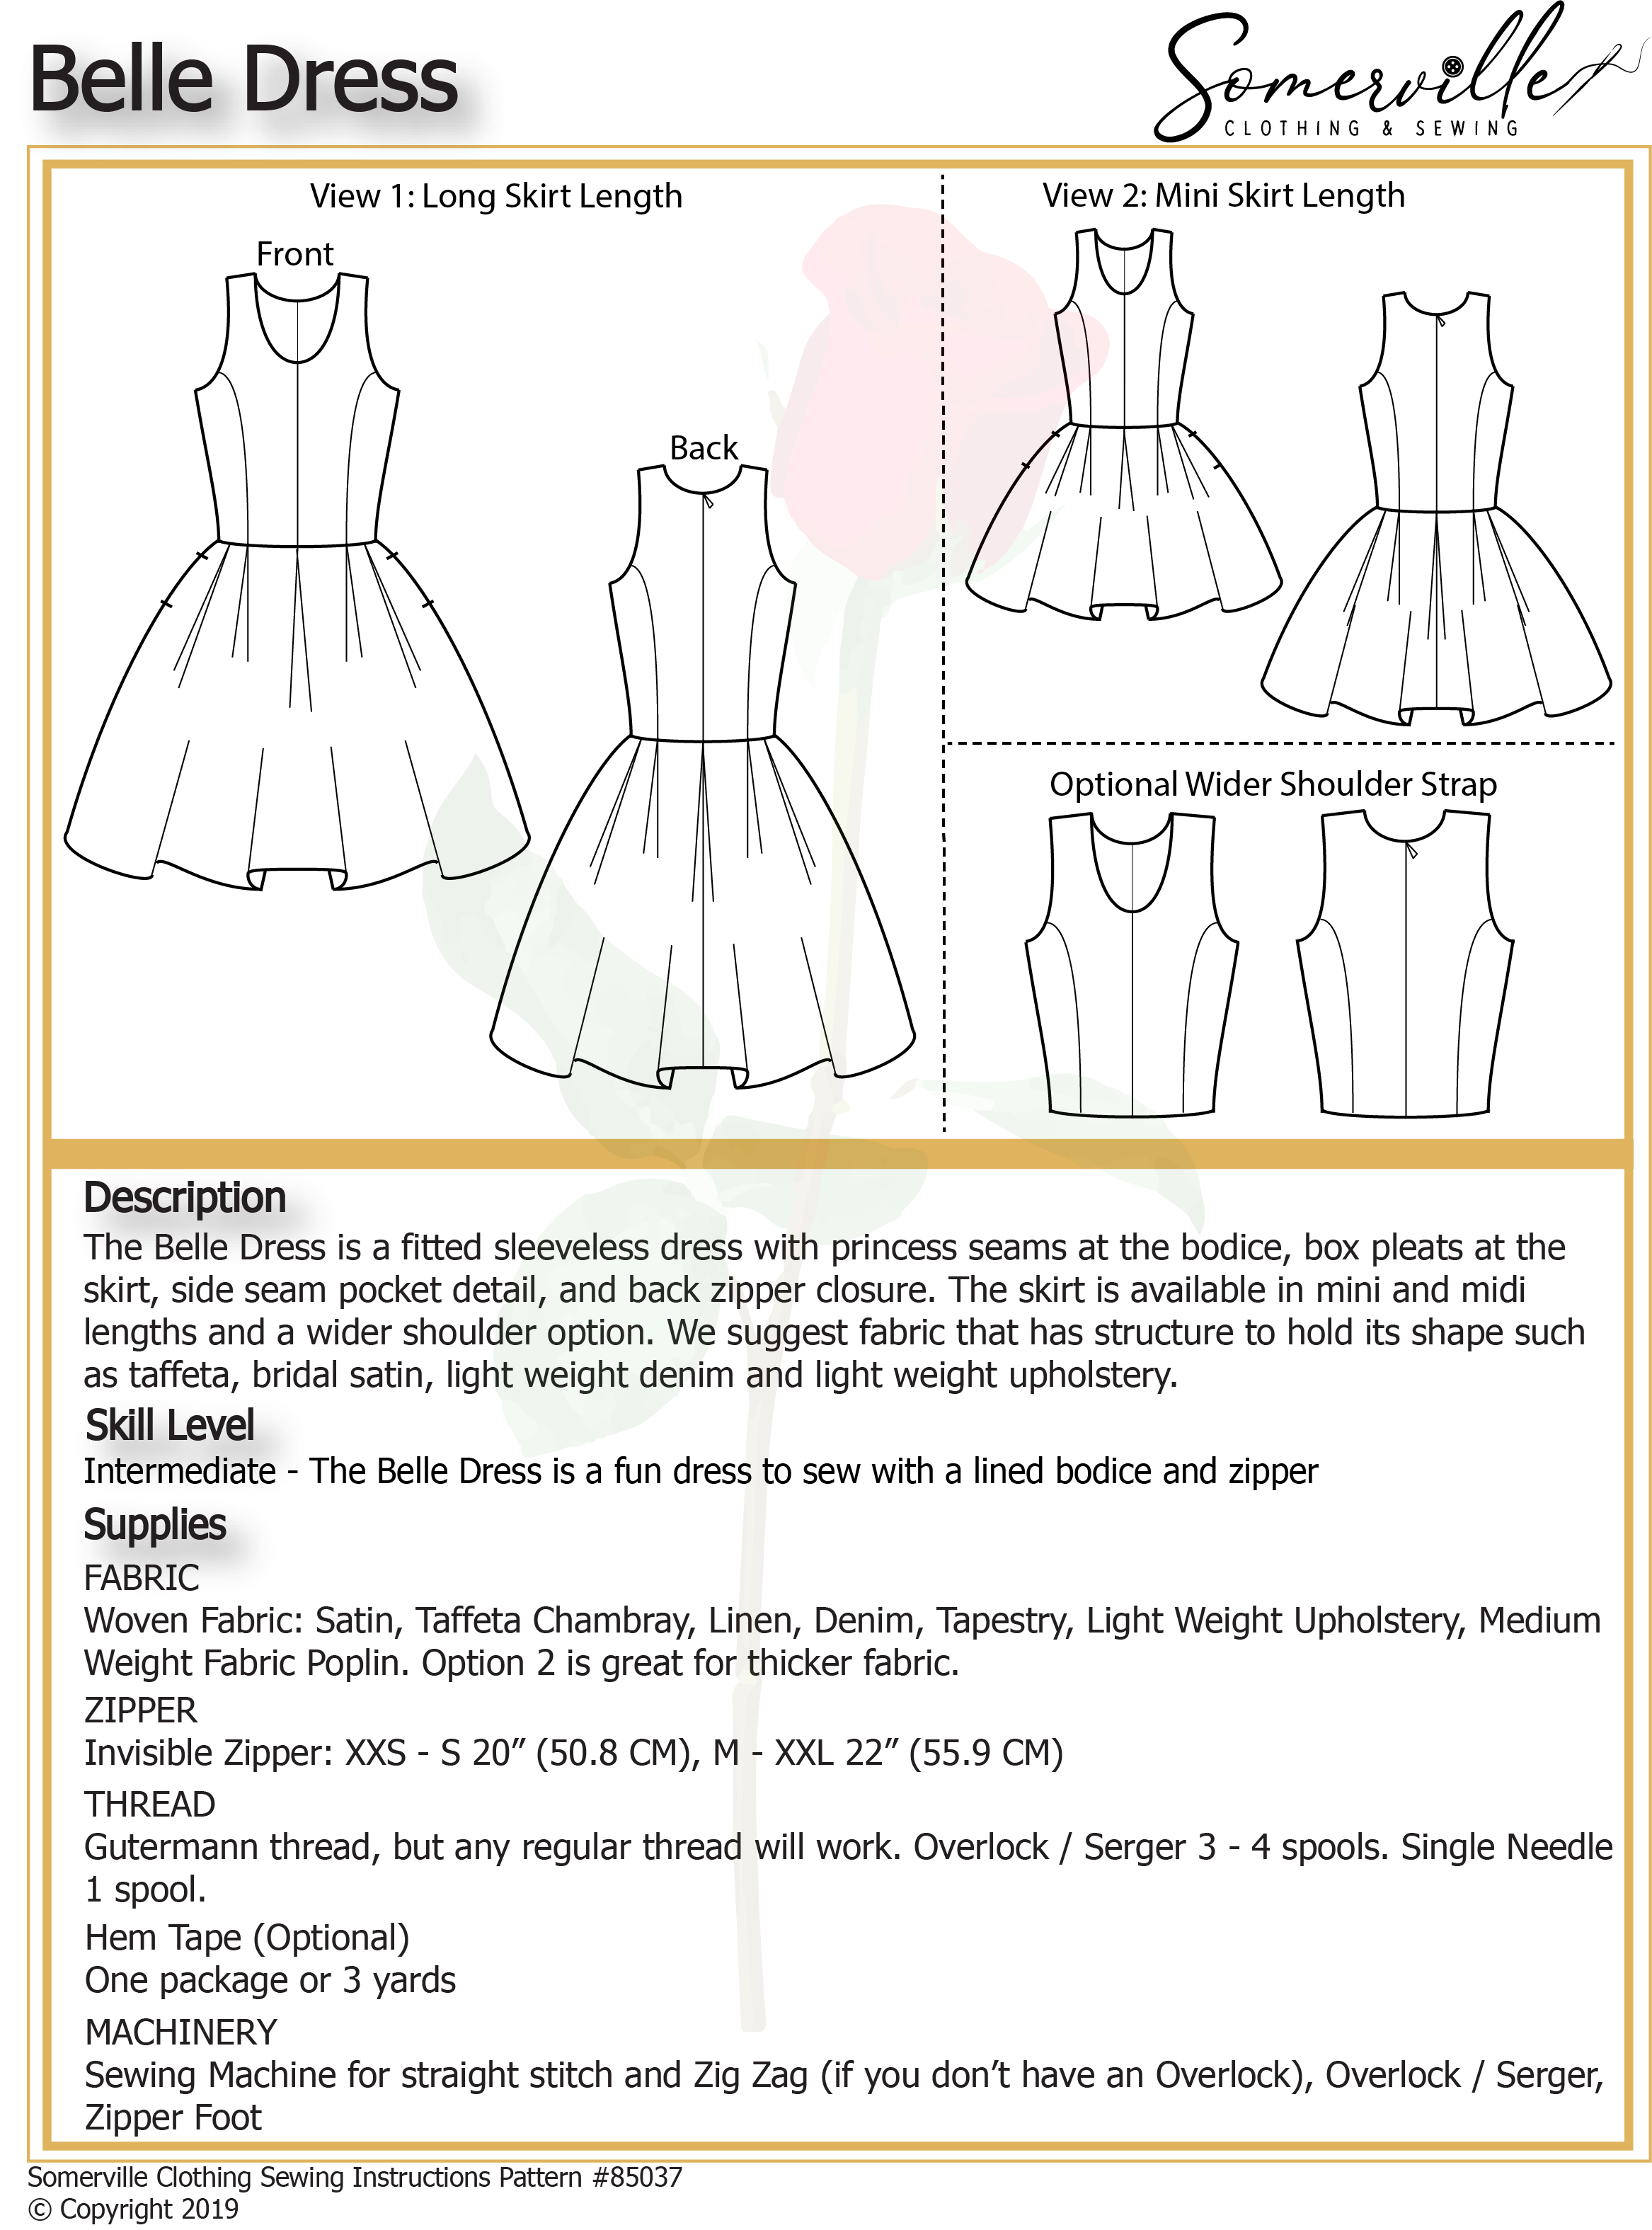 Bell Dress Pattern - PDF Digital Download